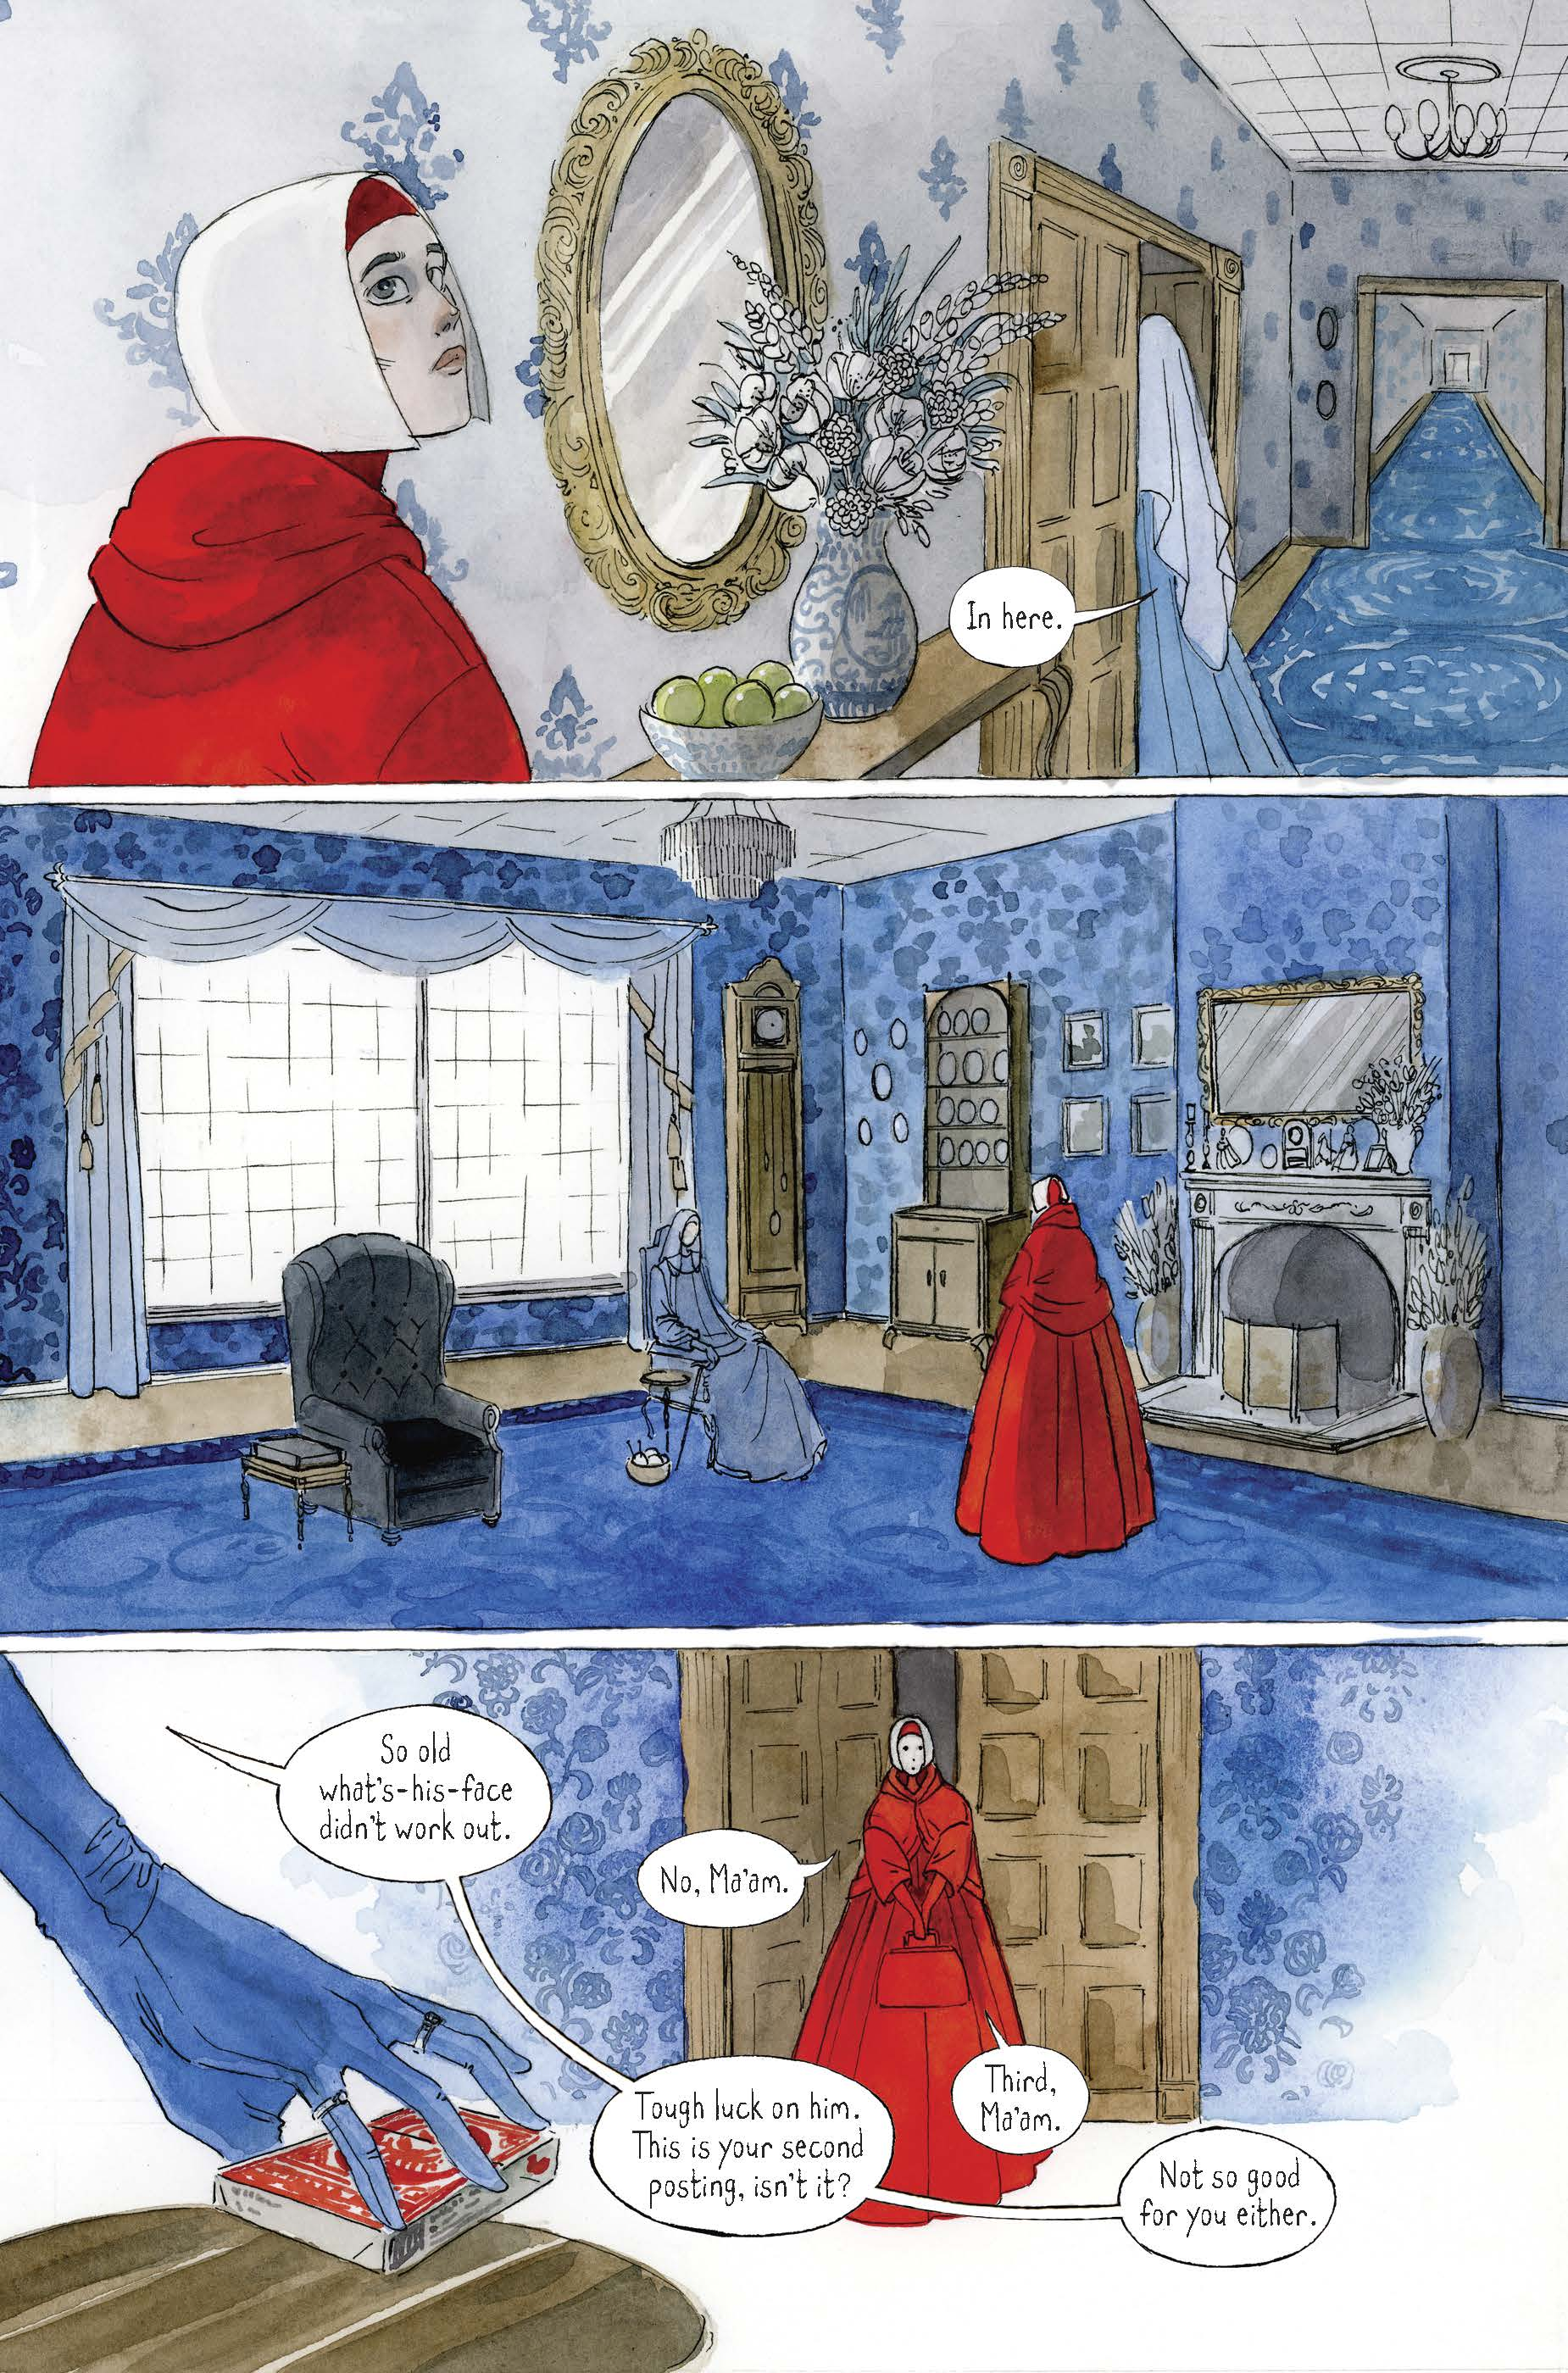 Read From The Graphic Novelization Of The Handmaid's Tale